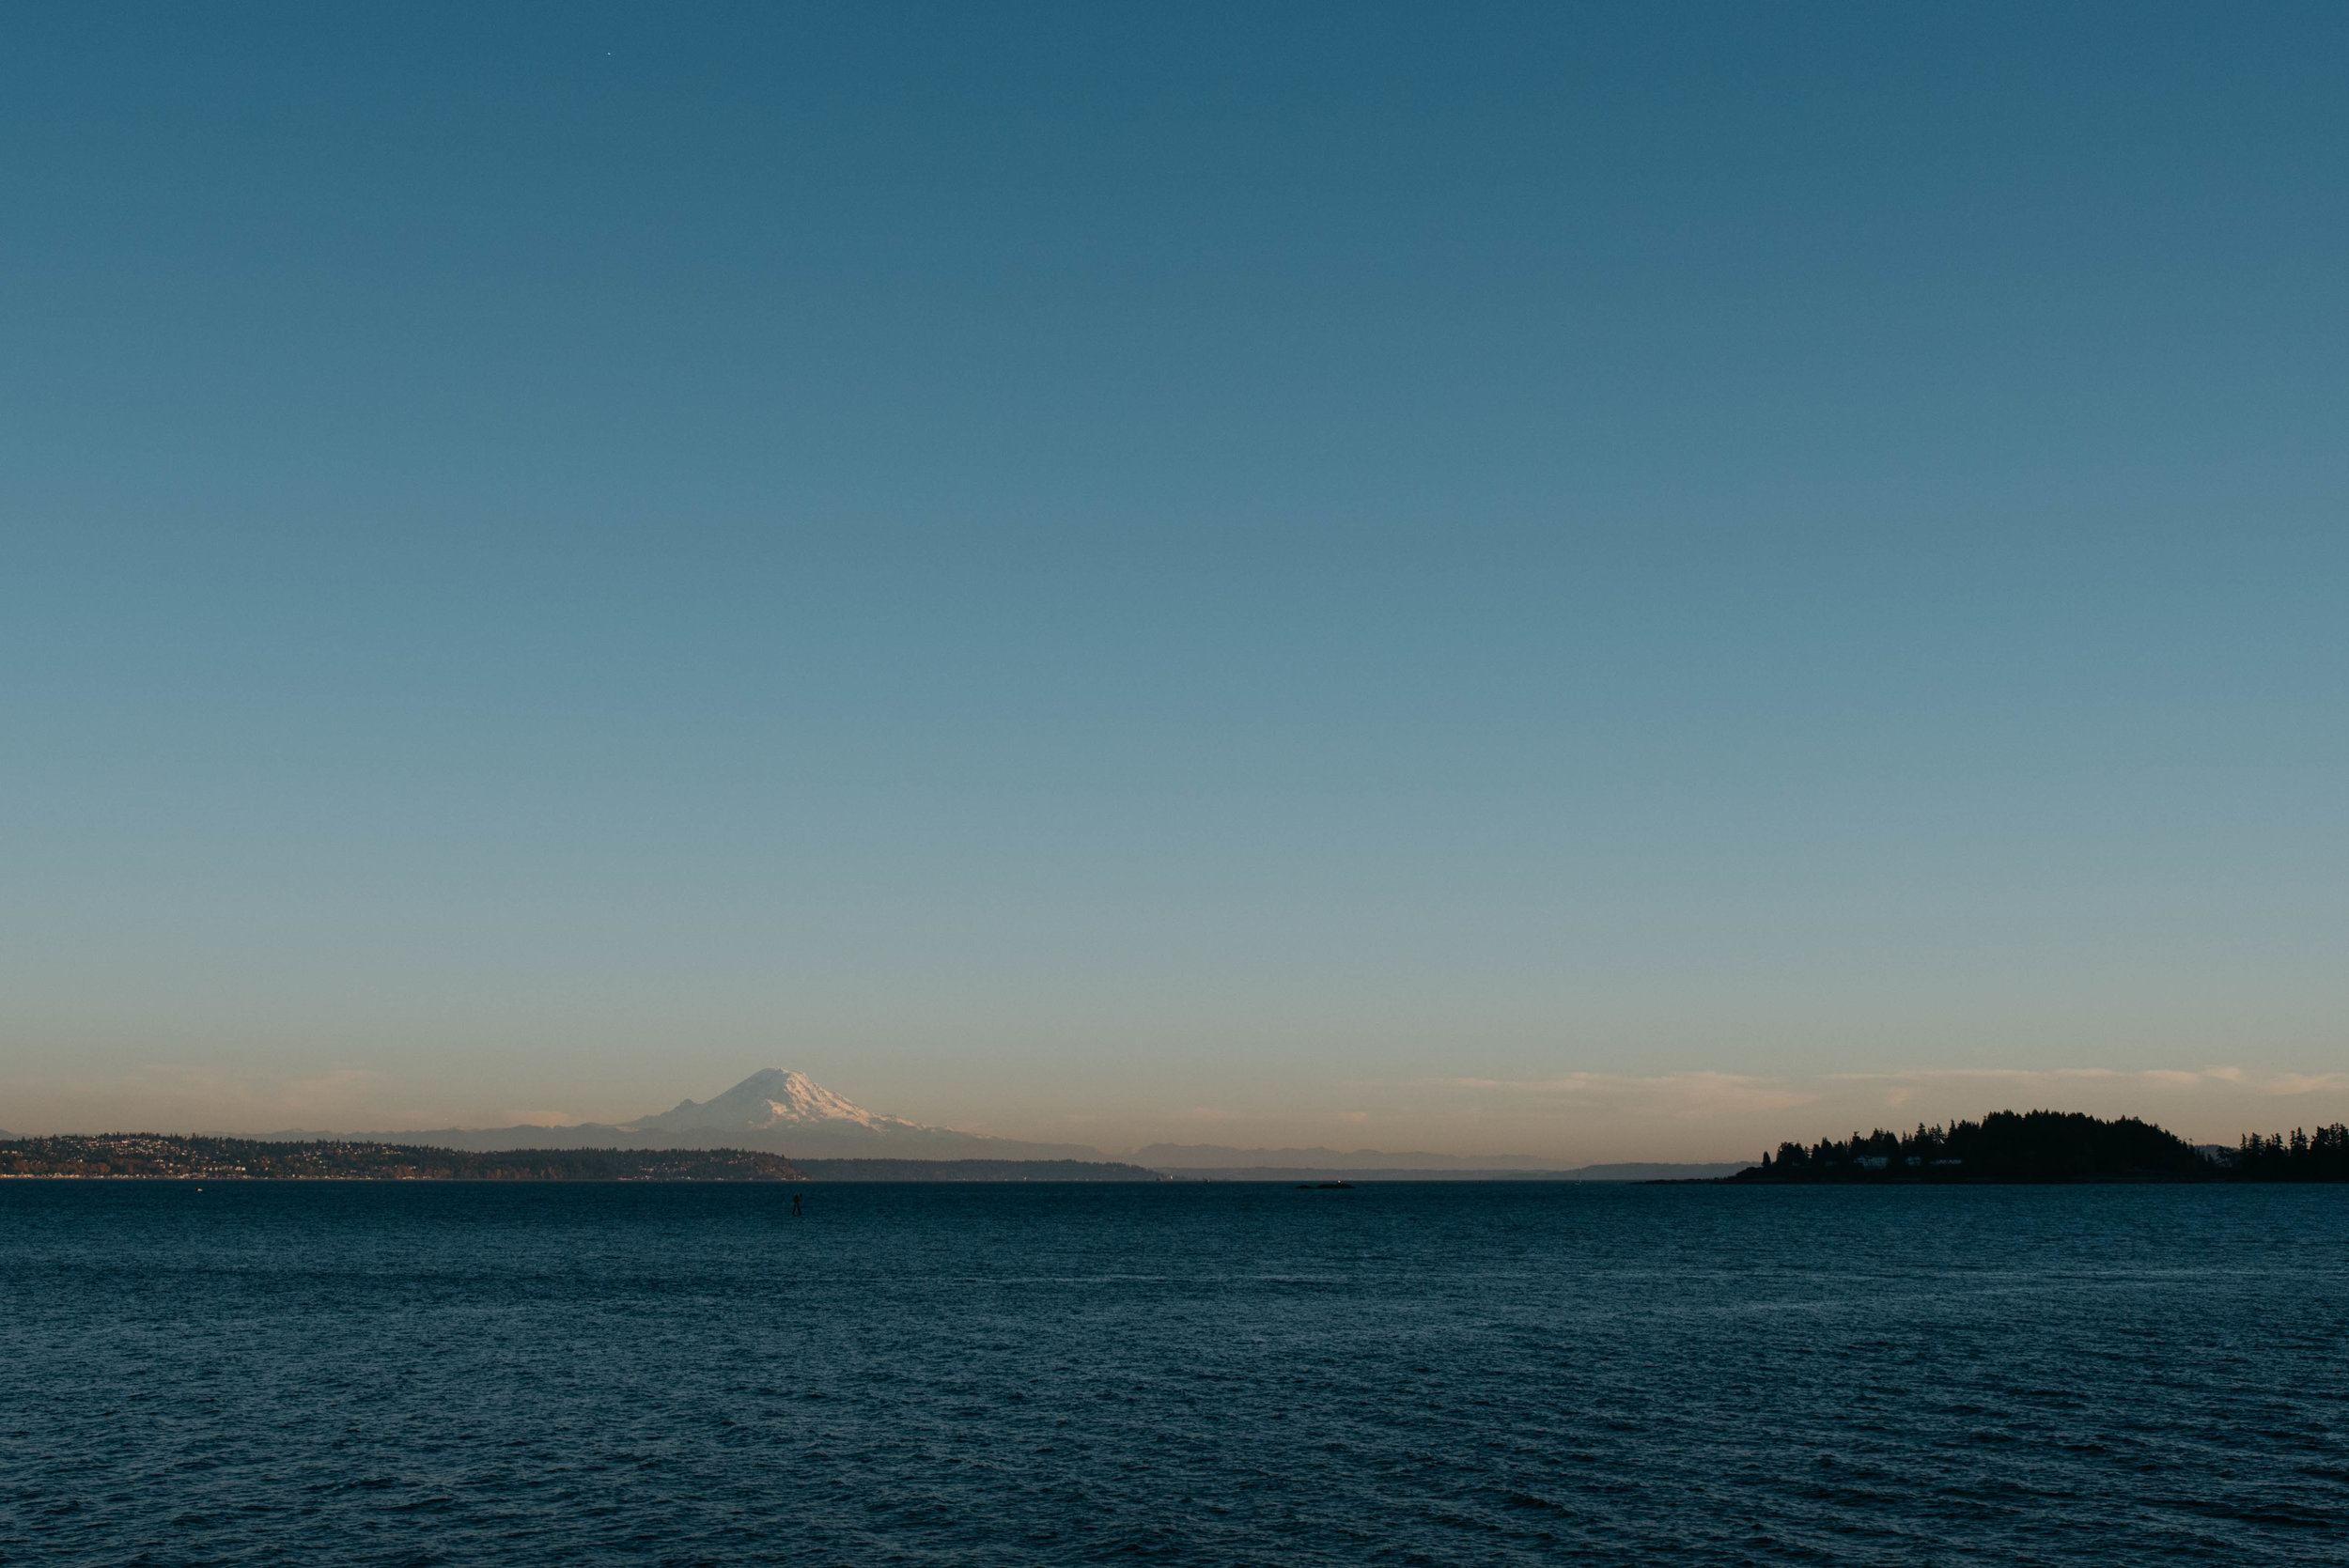 Seattle Ferry Travel photography mariah fisher-1.jpg